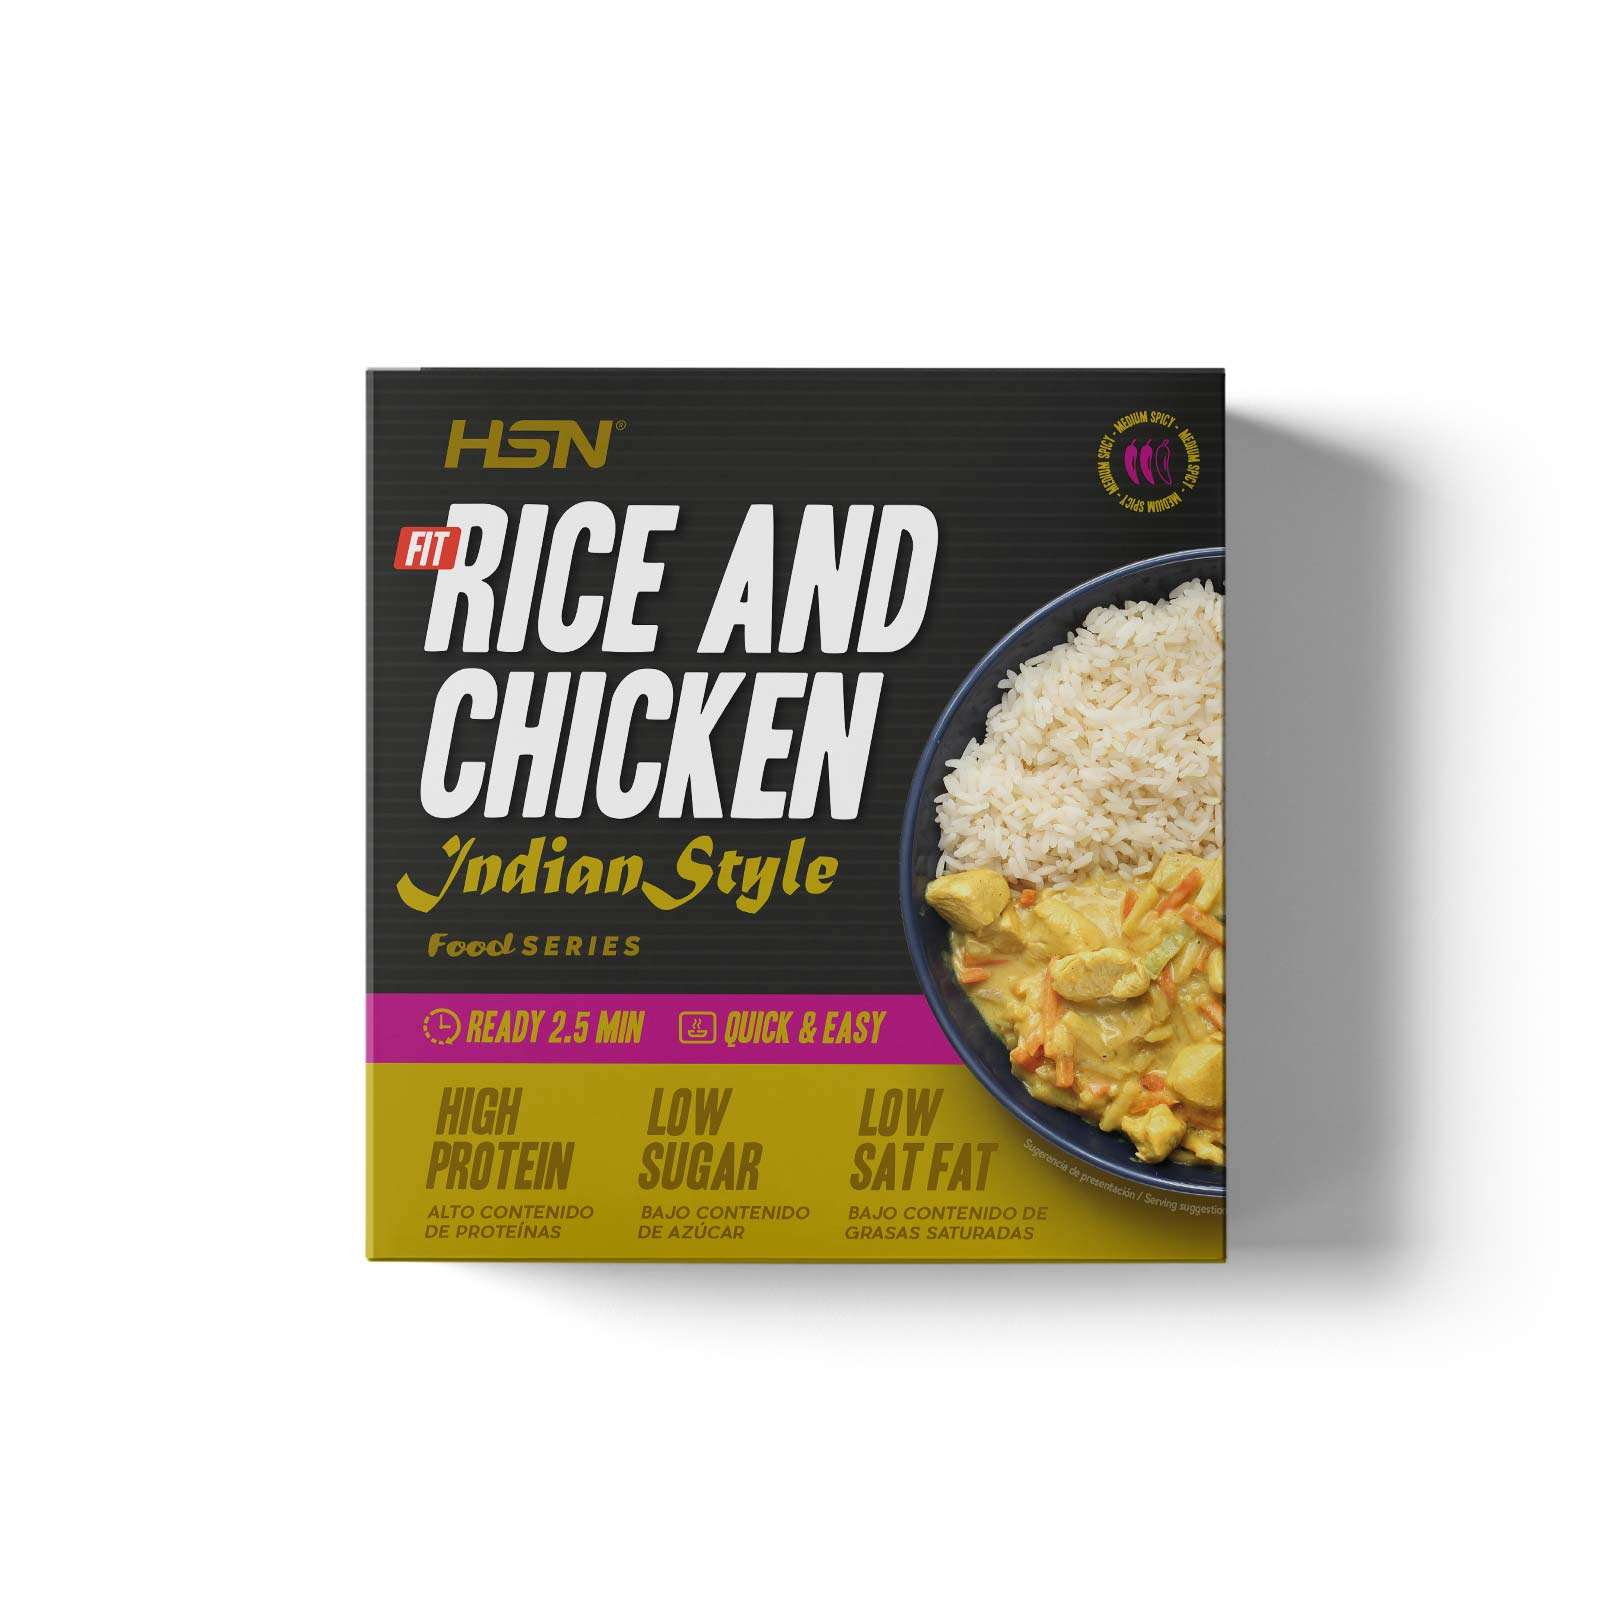 FIT ARROZ CON POLLO EN SALSA AL CURRY ESTILO HINDÚ - 420g